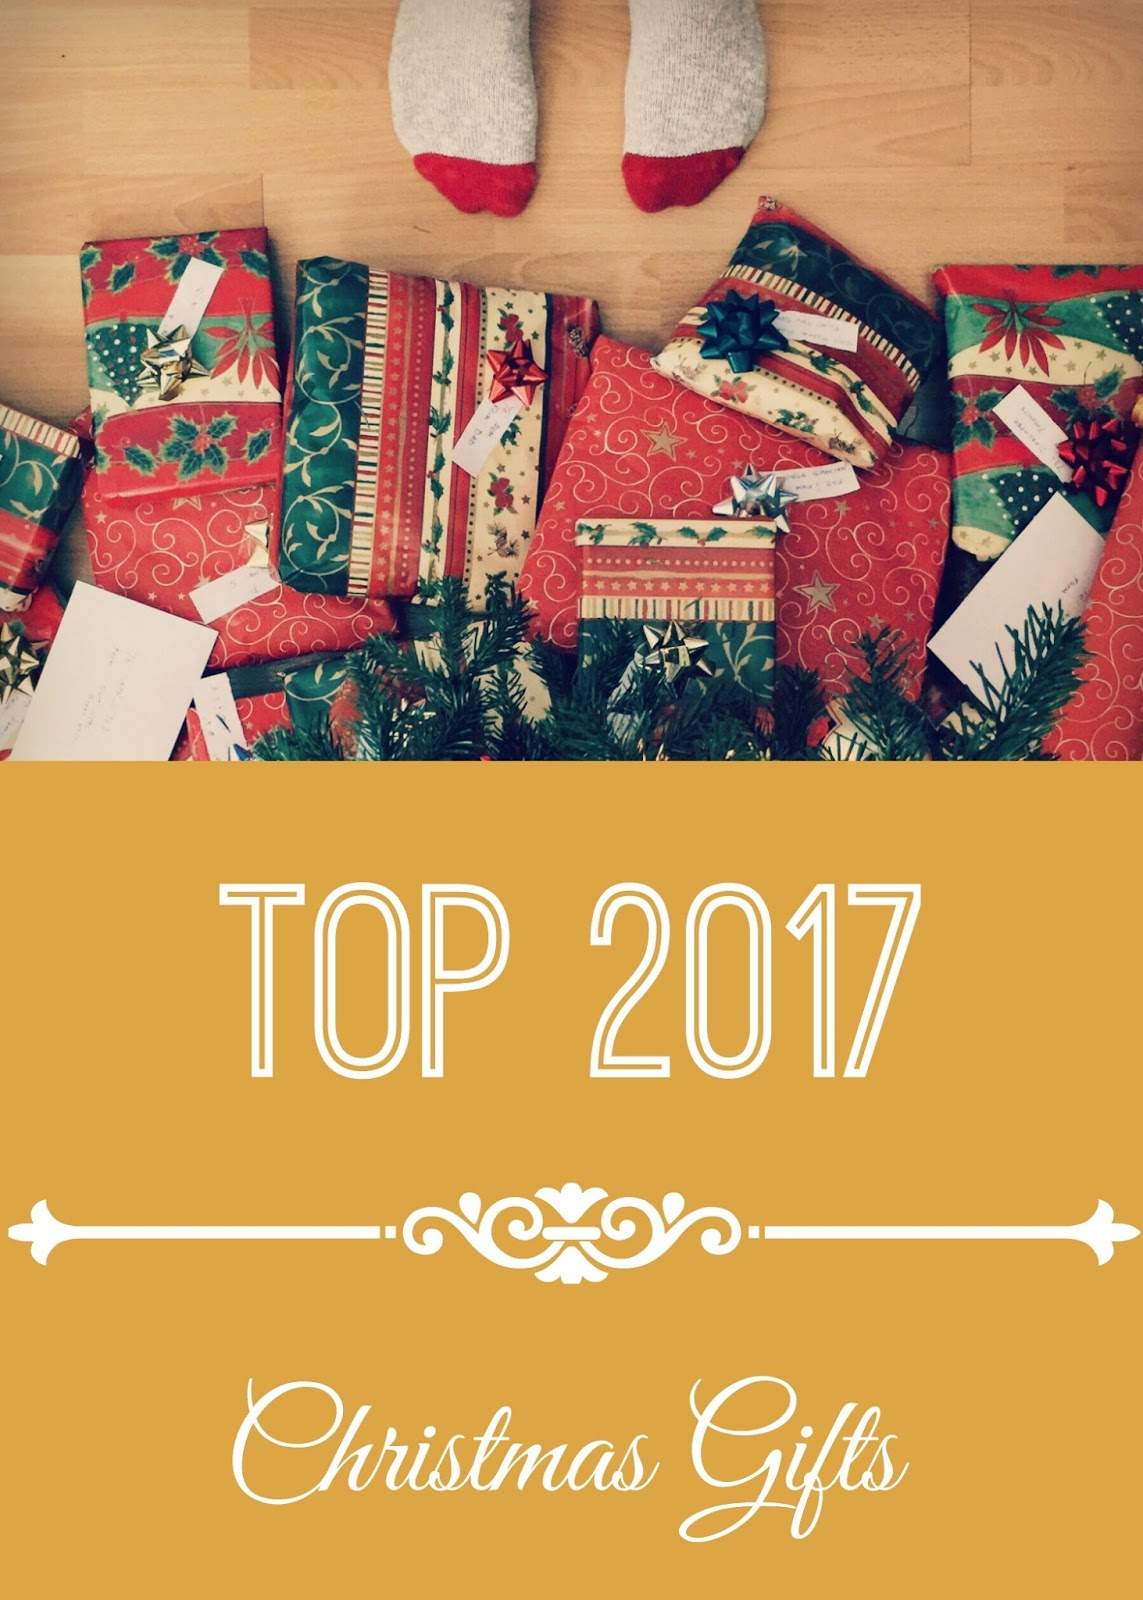 Top 2017 Christmas Gifts  via  www.productreviewmom.com